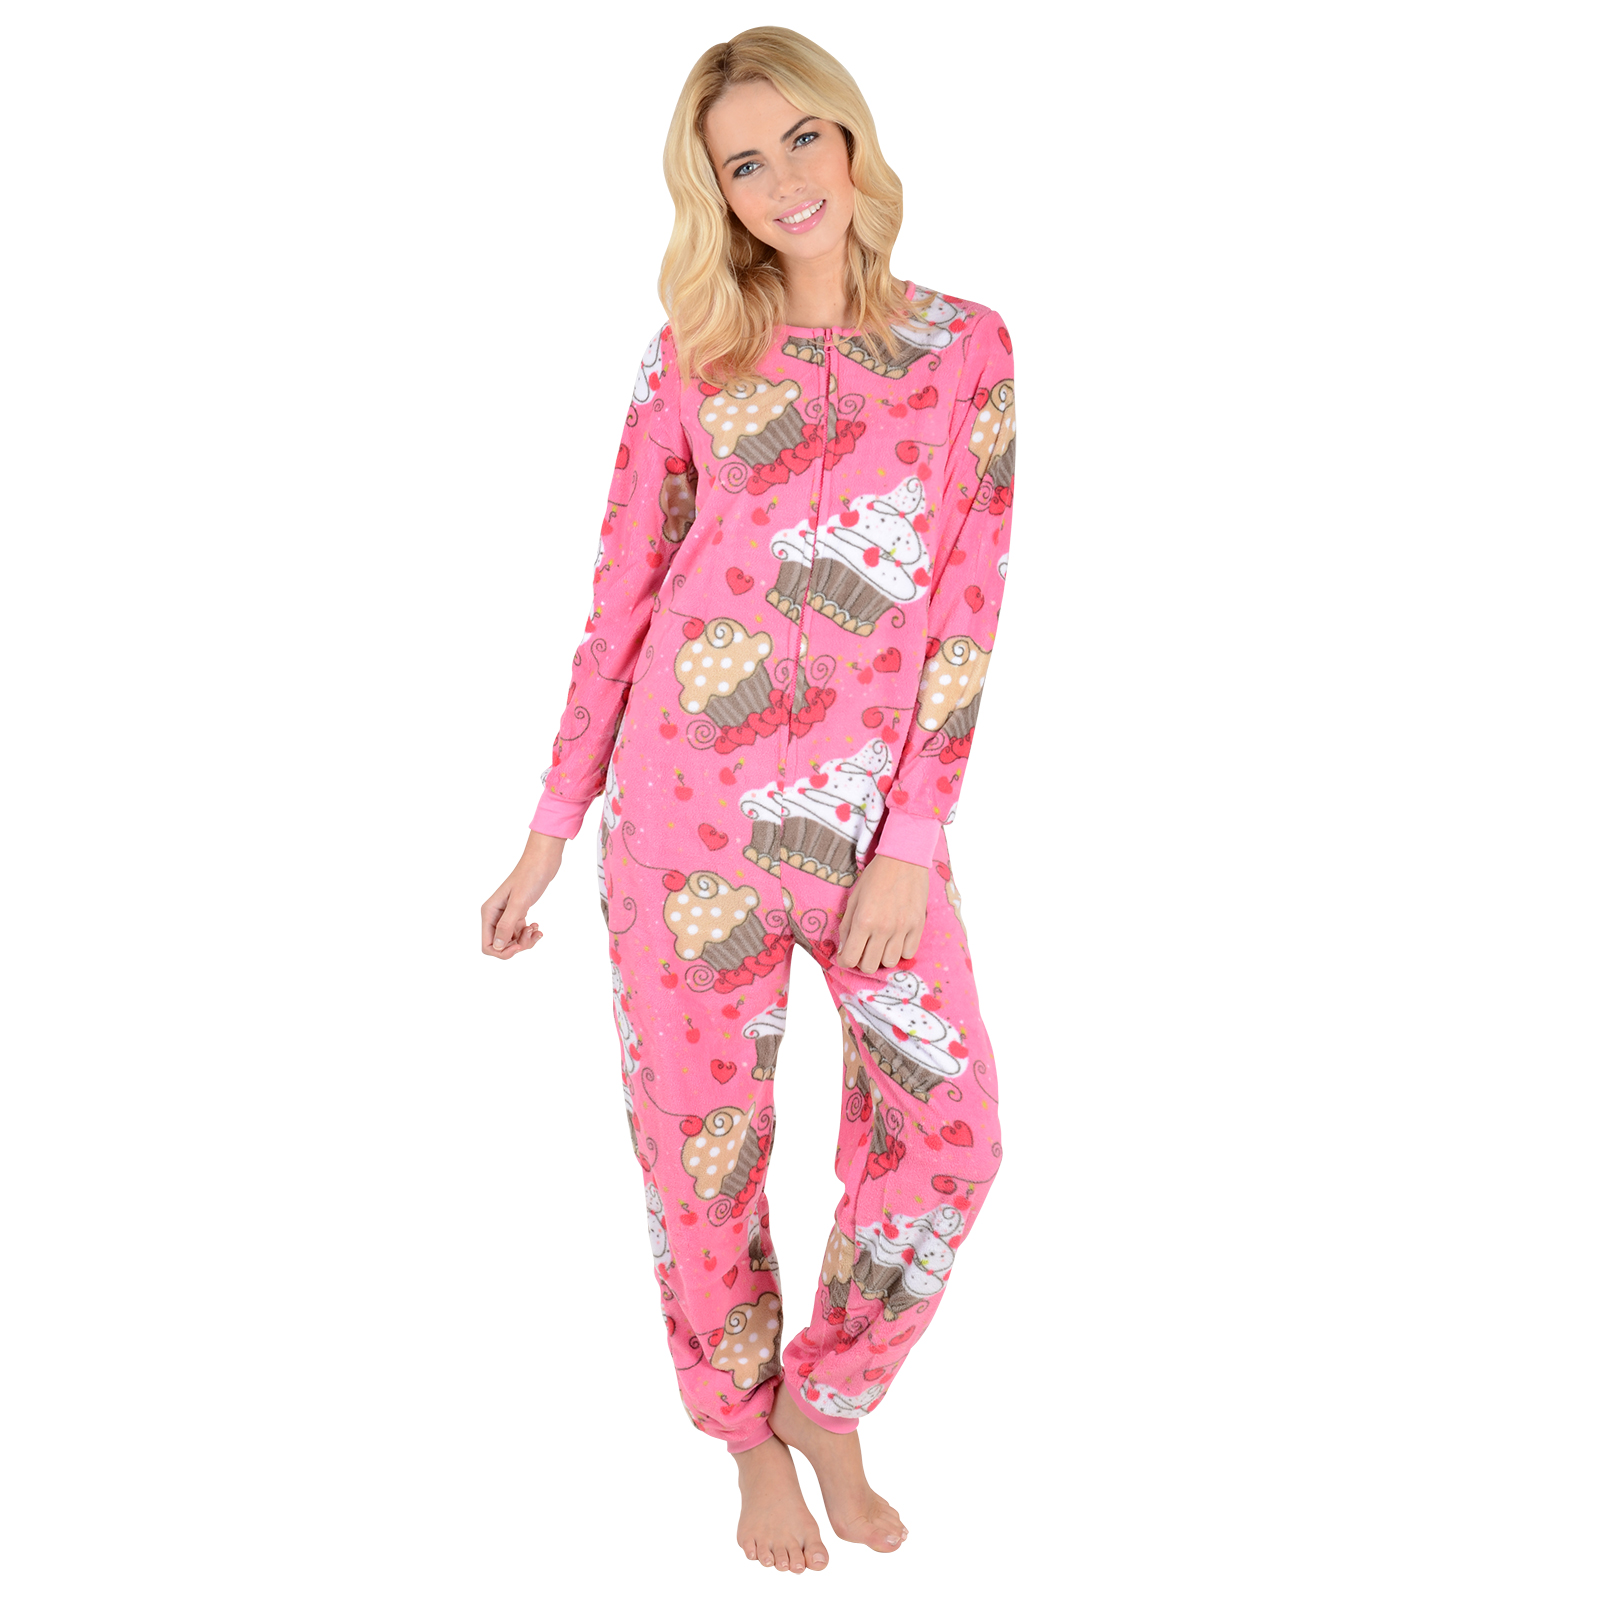 Dinosaur Fleece Footed Pajamas with Drop Seat and Long Night Cap - *LIMITED SIZES* $ Rubber Ducks Hooded Footed Pajamas with Drop Seat - *LIMITED SIZES*.